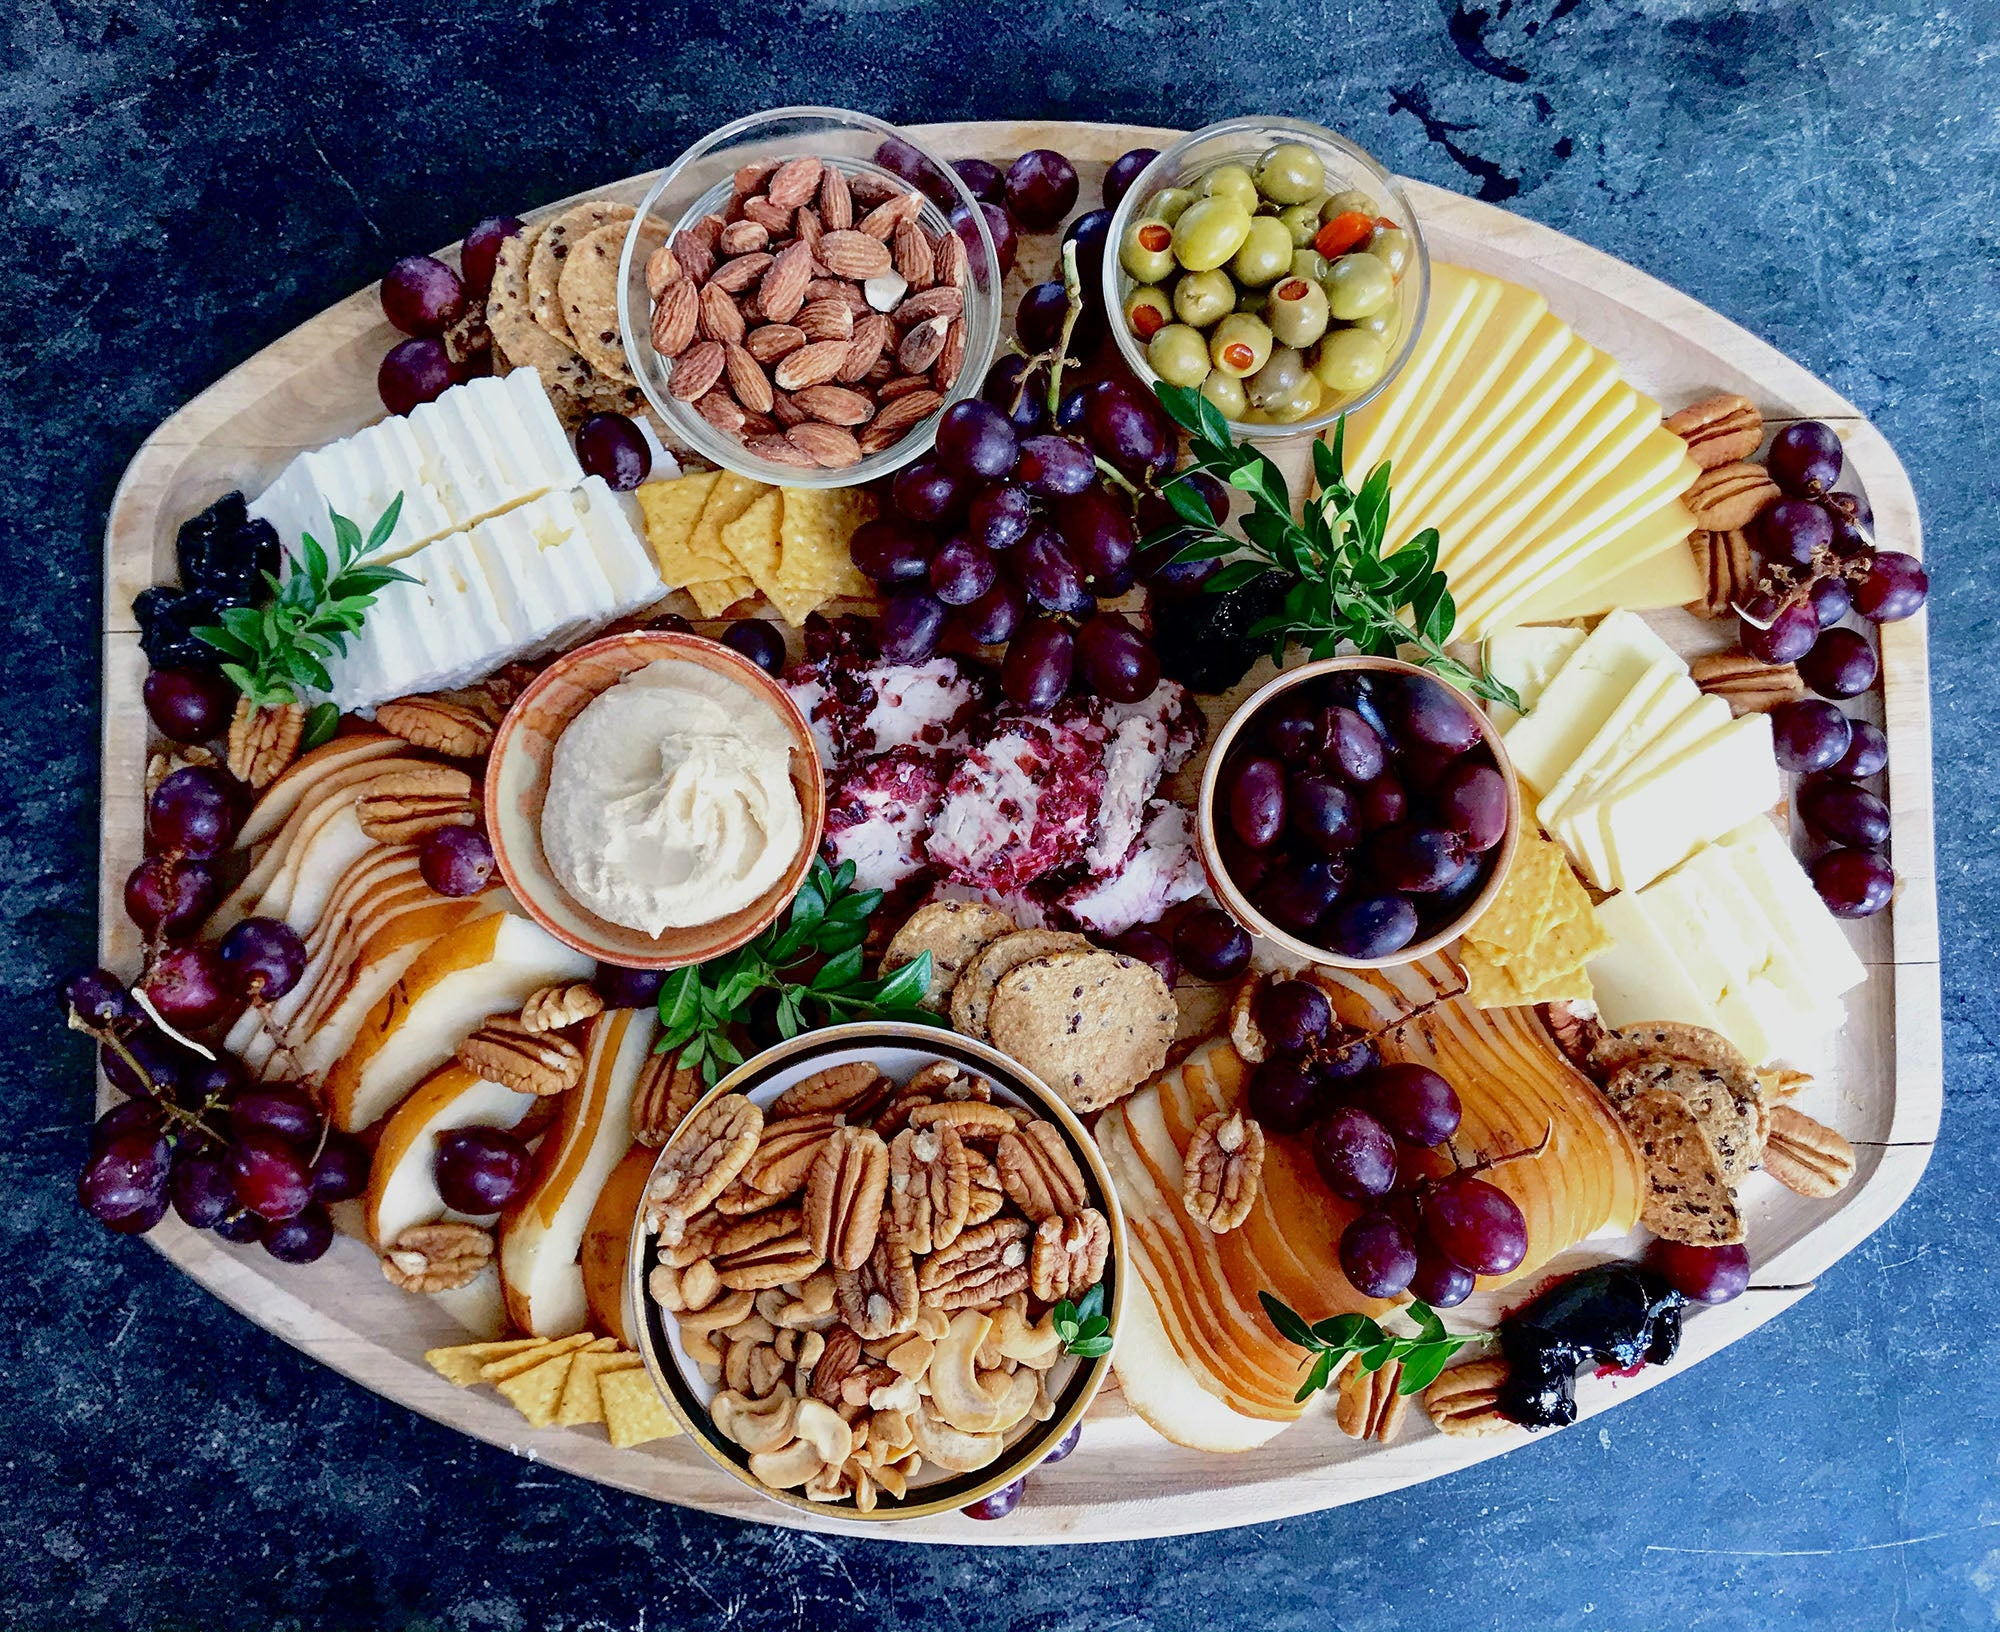 food platter with meats, cheeses, and fruits